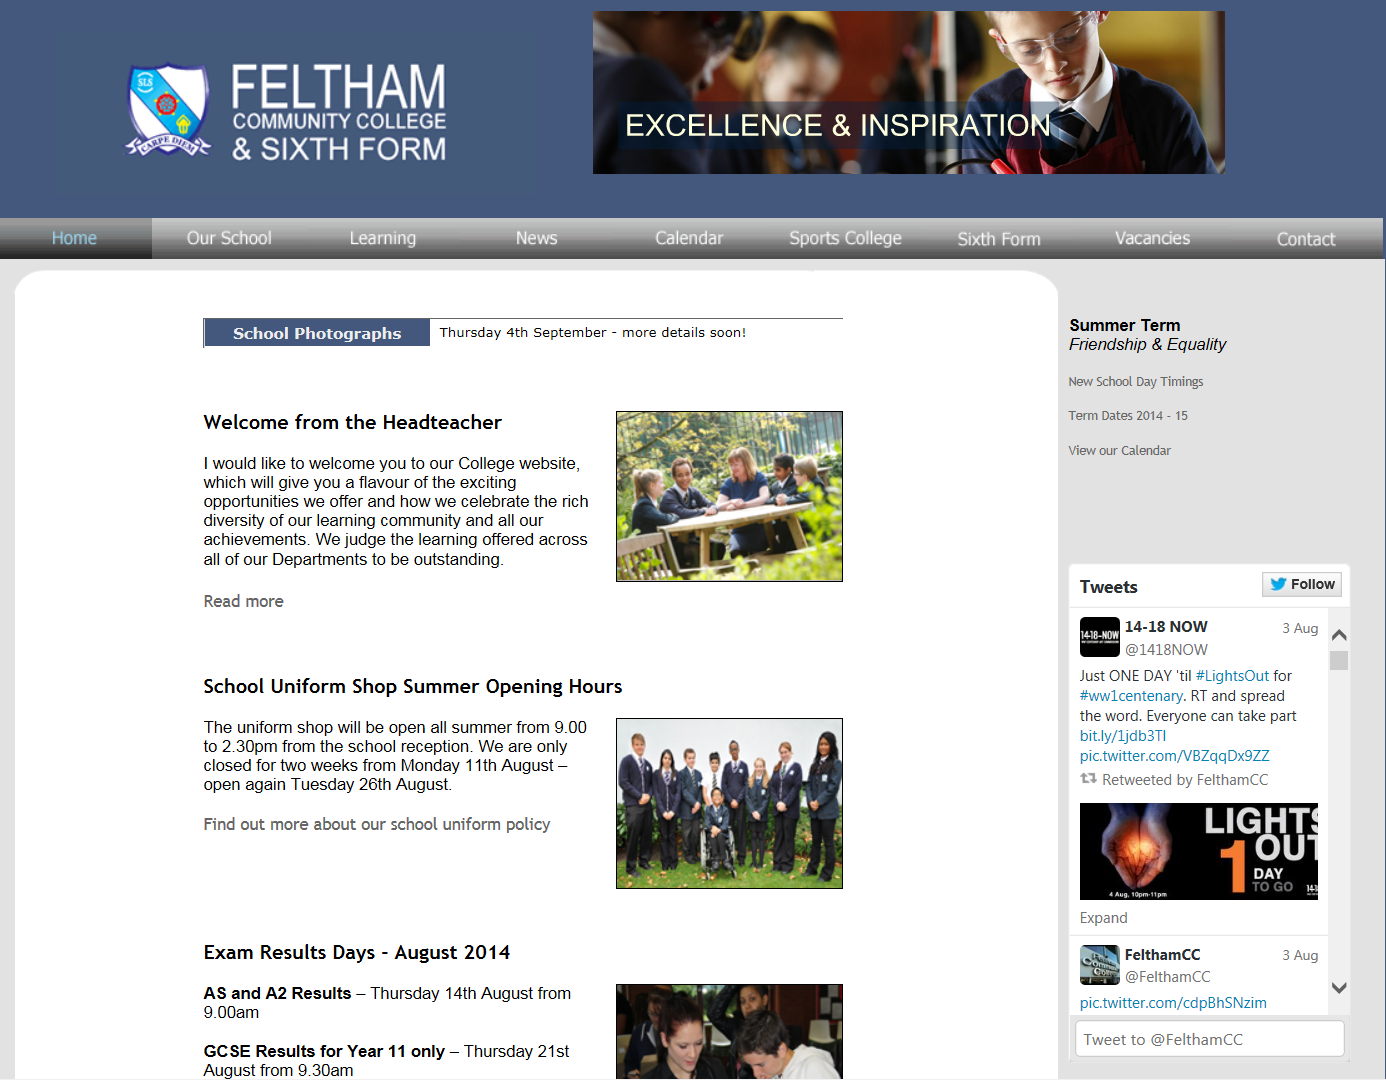 Feltham Community College